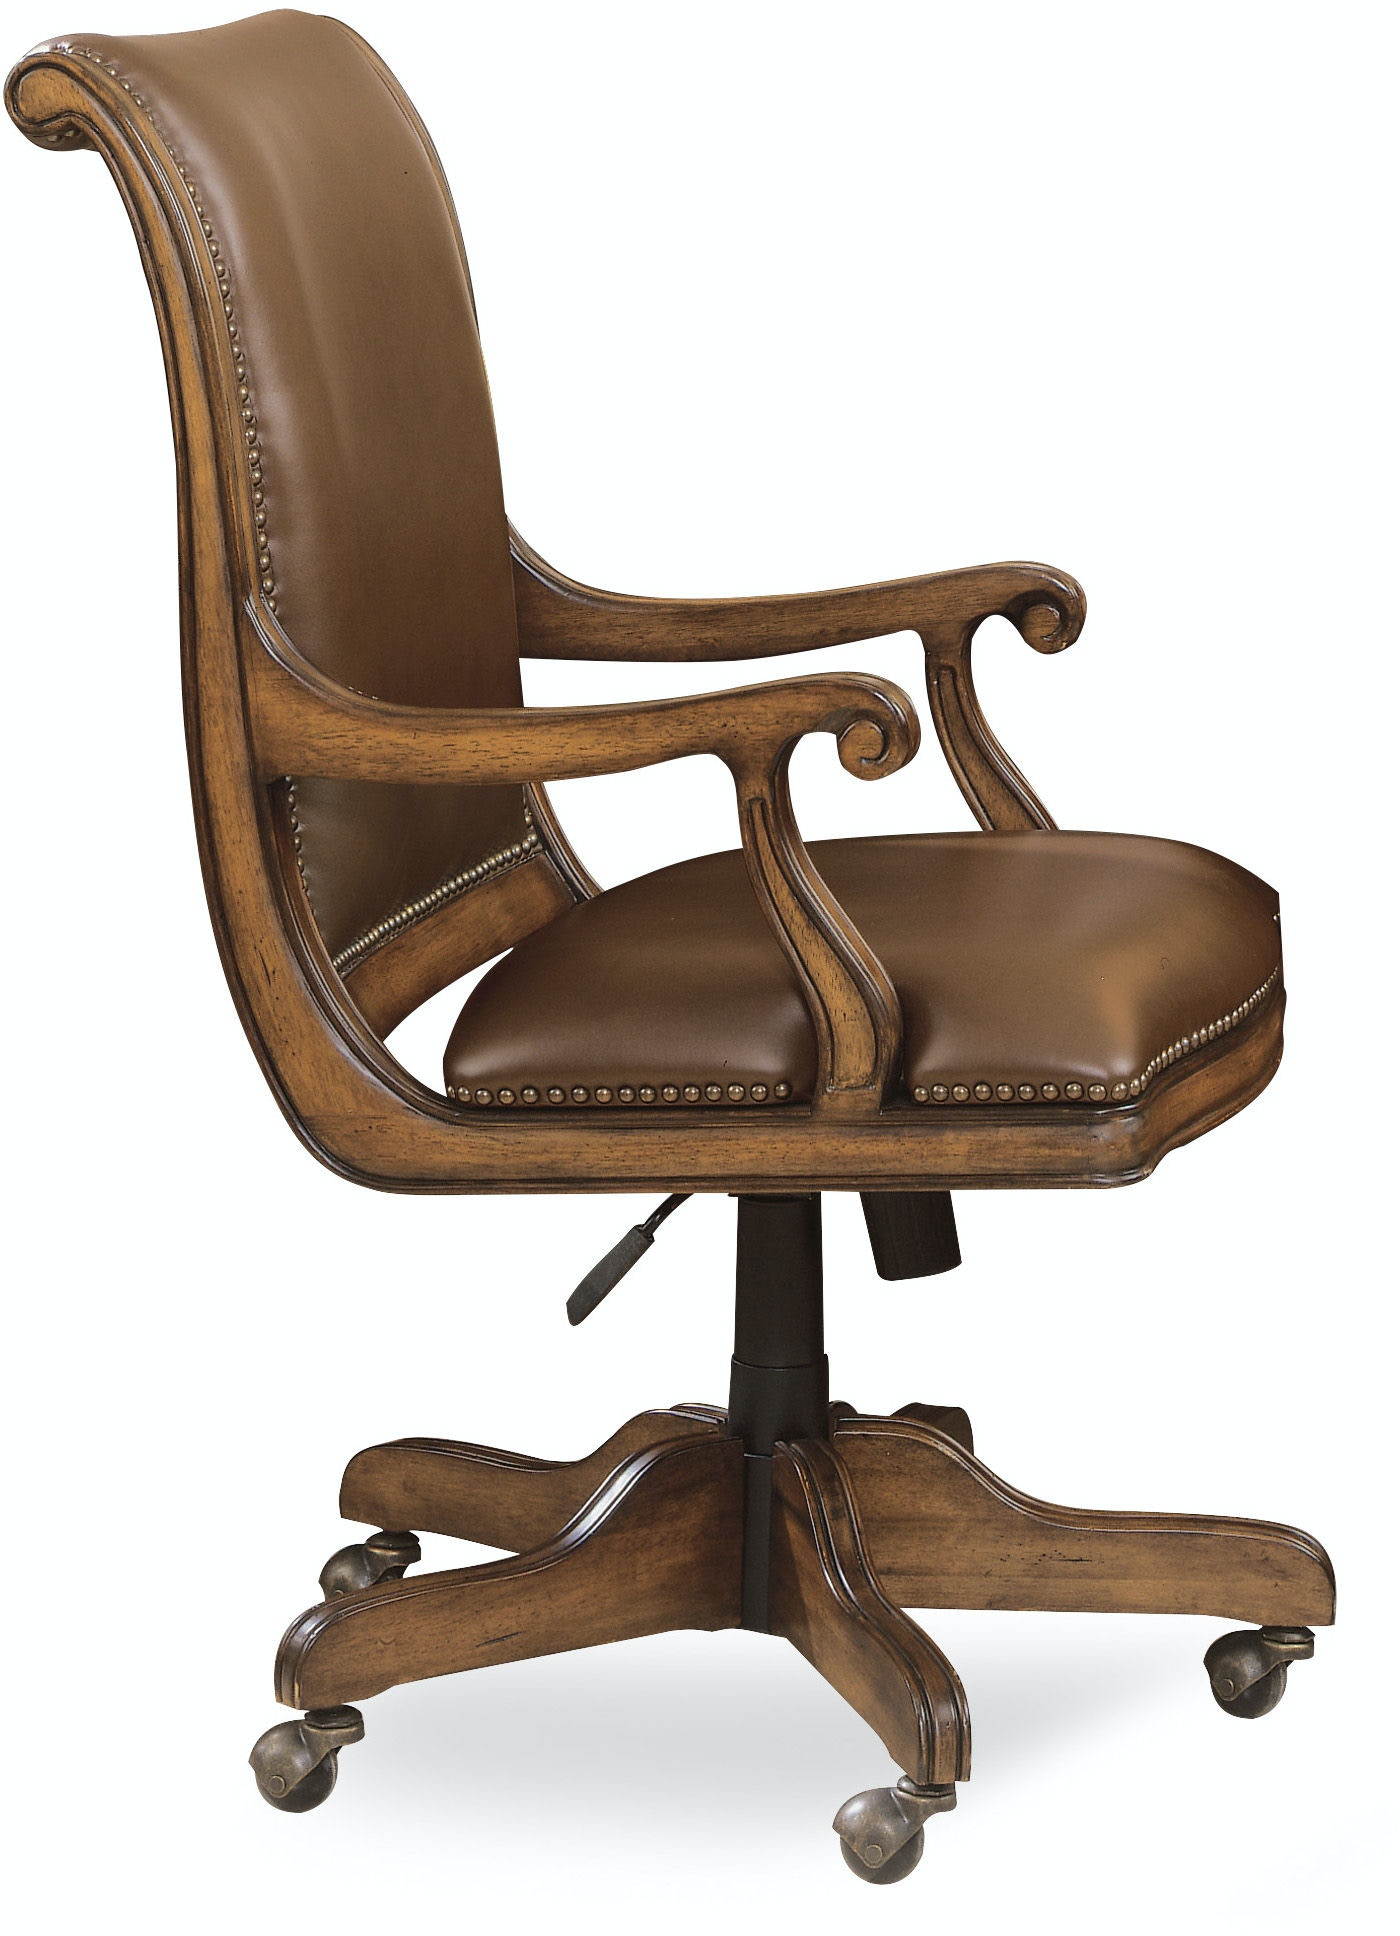 Bankers chair leather - Hooker Furniture Brookhaven Desk Chair 281 30 220